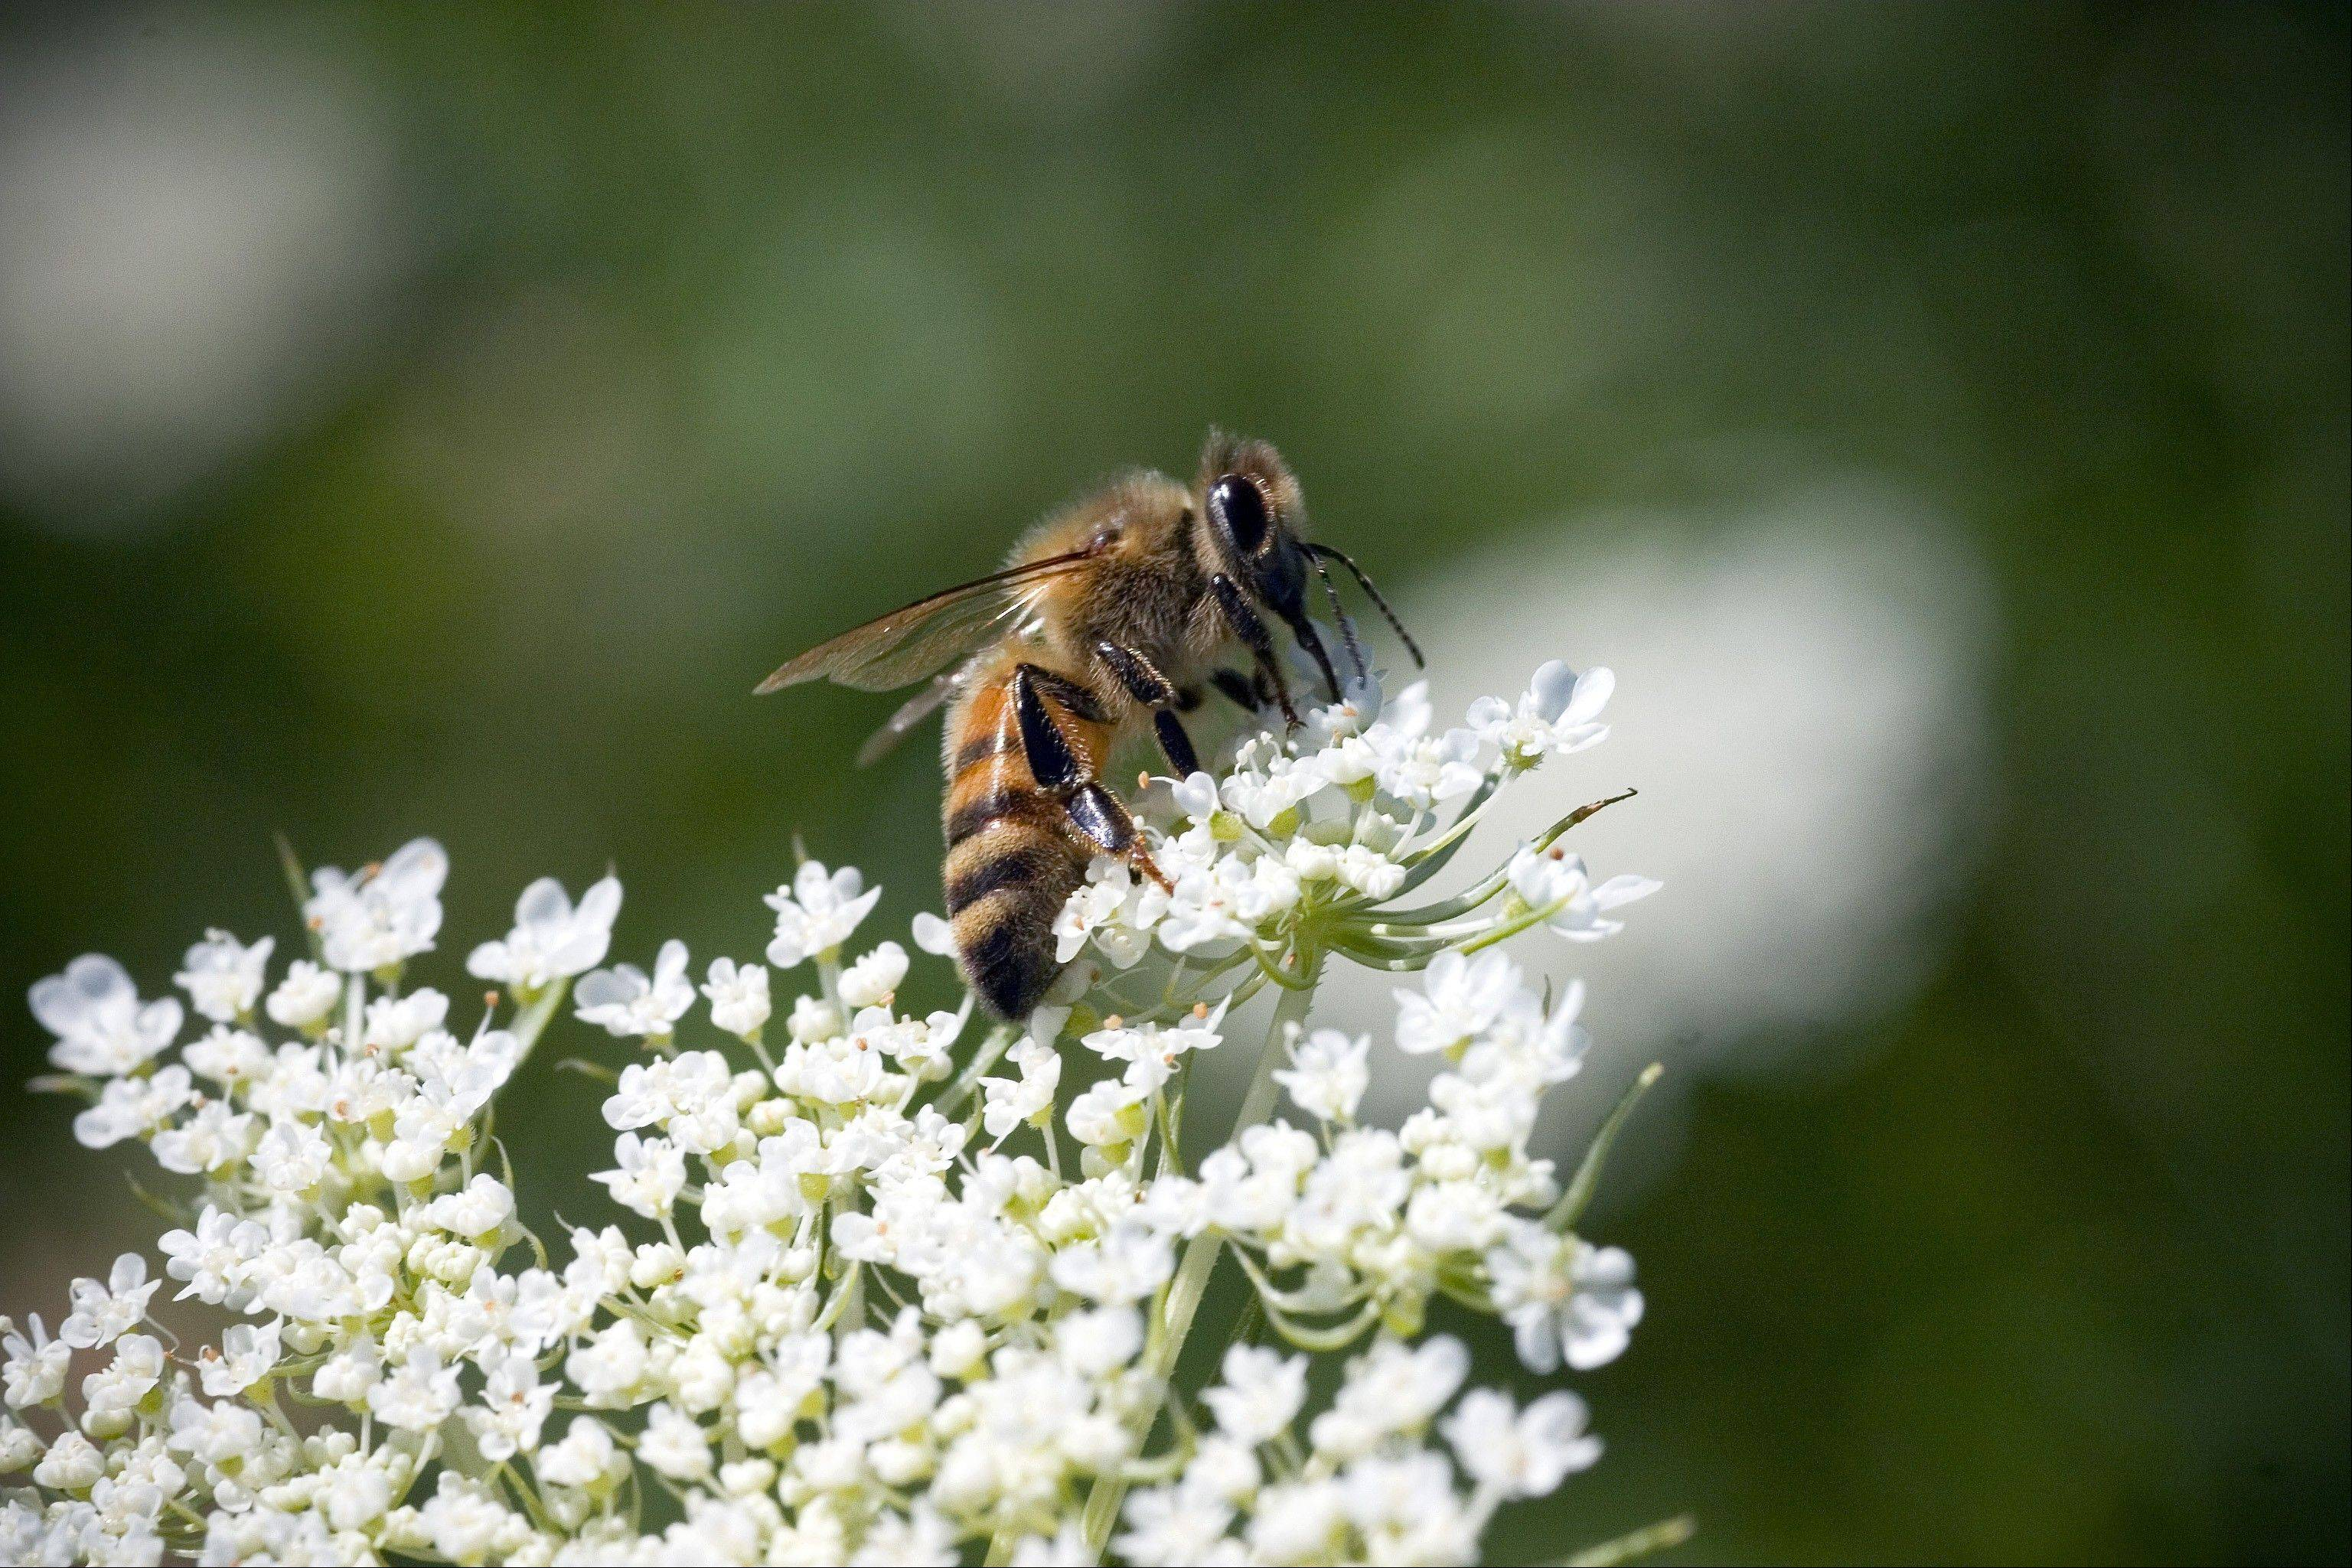 Attendees of Kline Creek Farm's first National Honey Bee Day celebrations will visit the farm's honey house to learn about the honey-making process, see a new garden of plants attractive to pollinators, watch candle-making demonstrations and participate in a honey tasting.